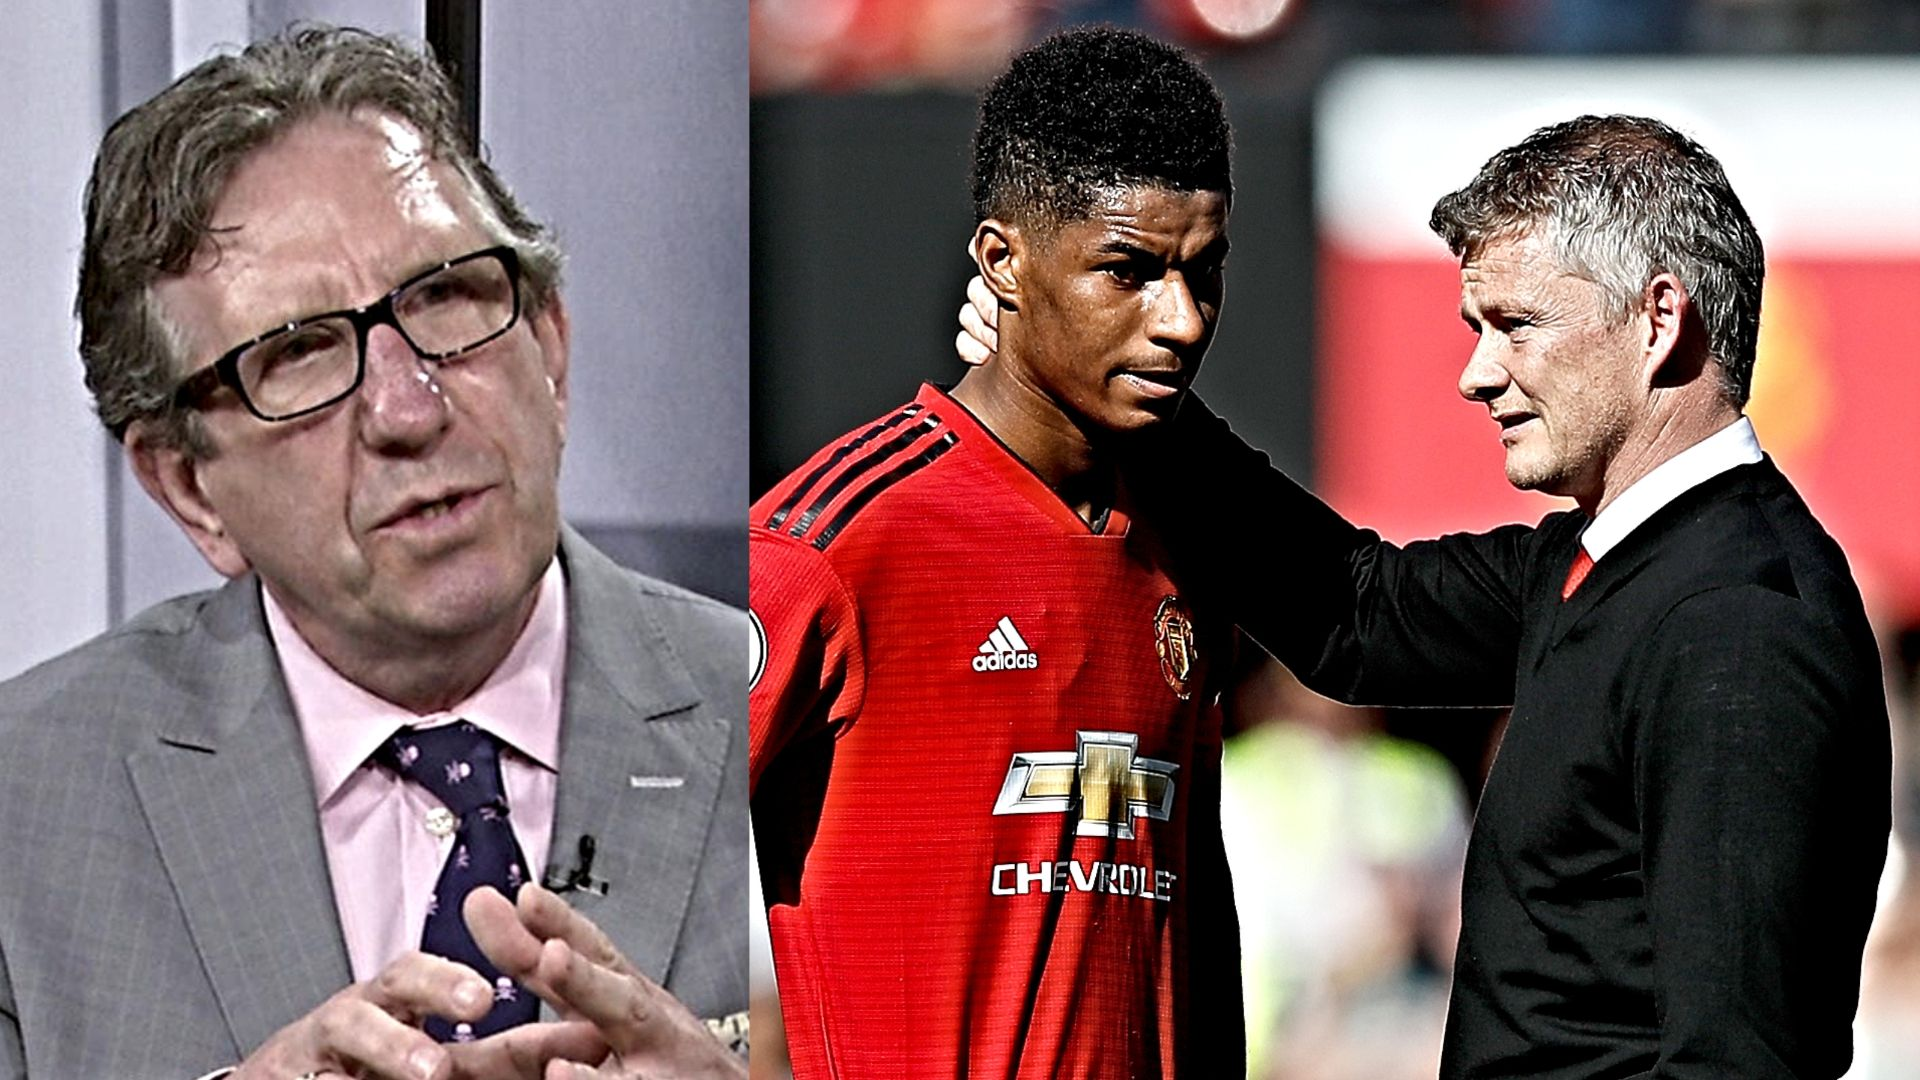 Mariner: Solskjaer can help Rashford become an elite No. 9